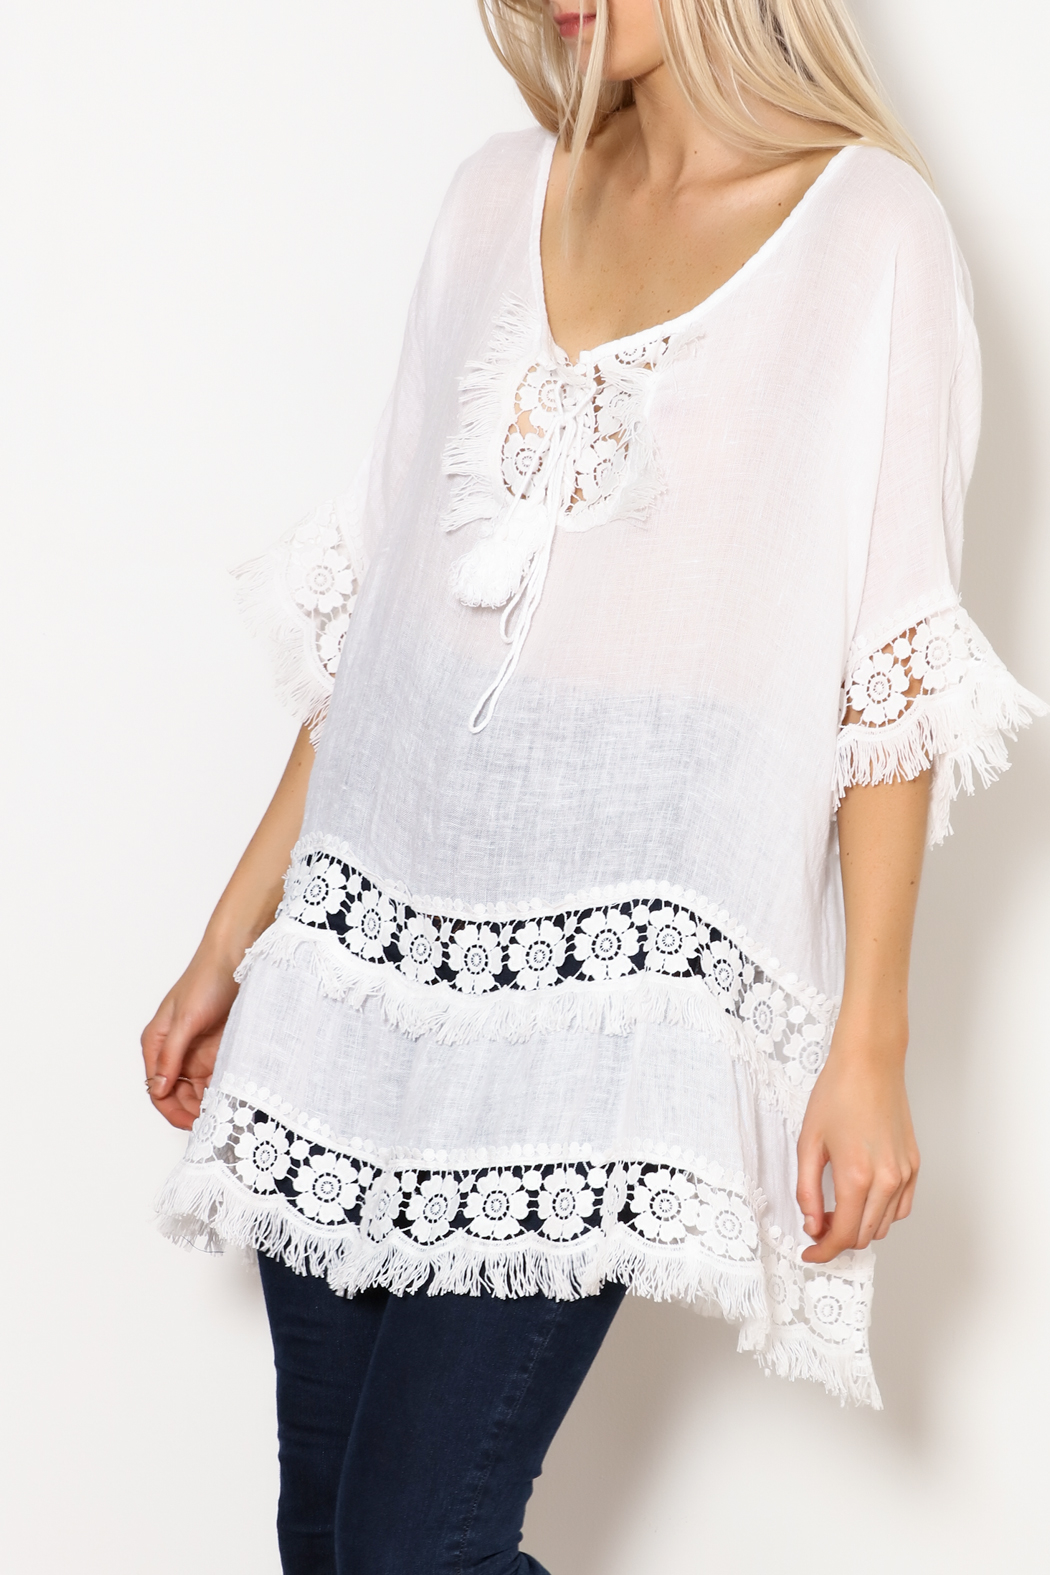 SCANDAL Art White Linen & Lace & Fringe Tunic - Main Image